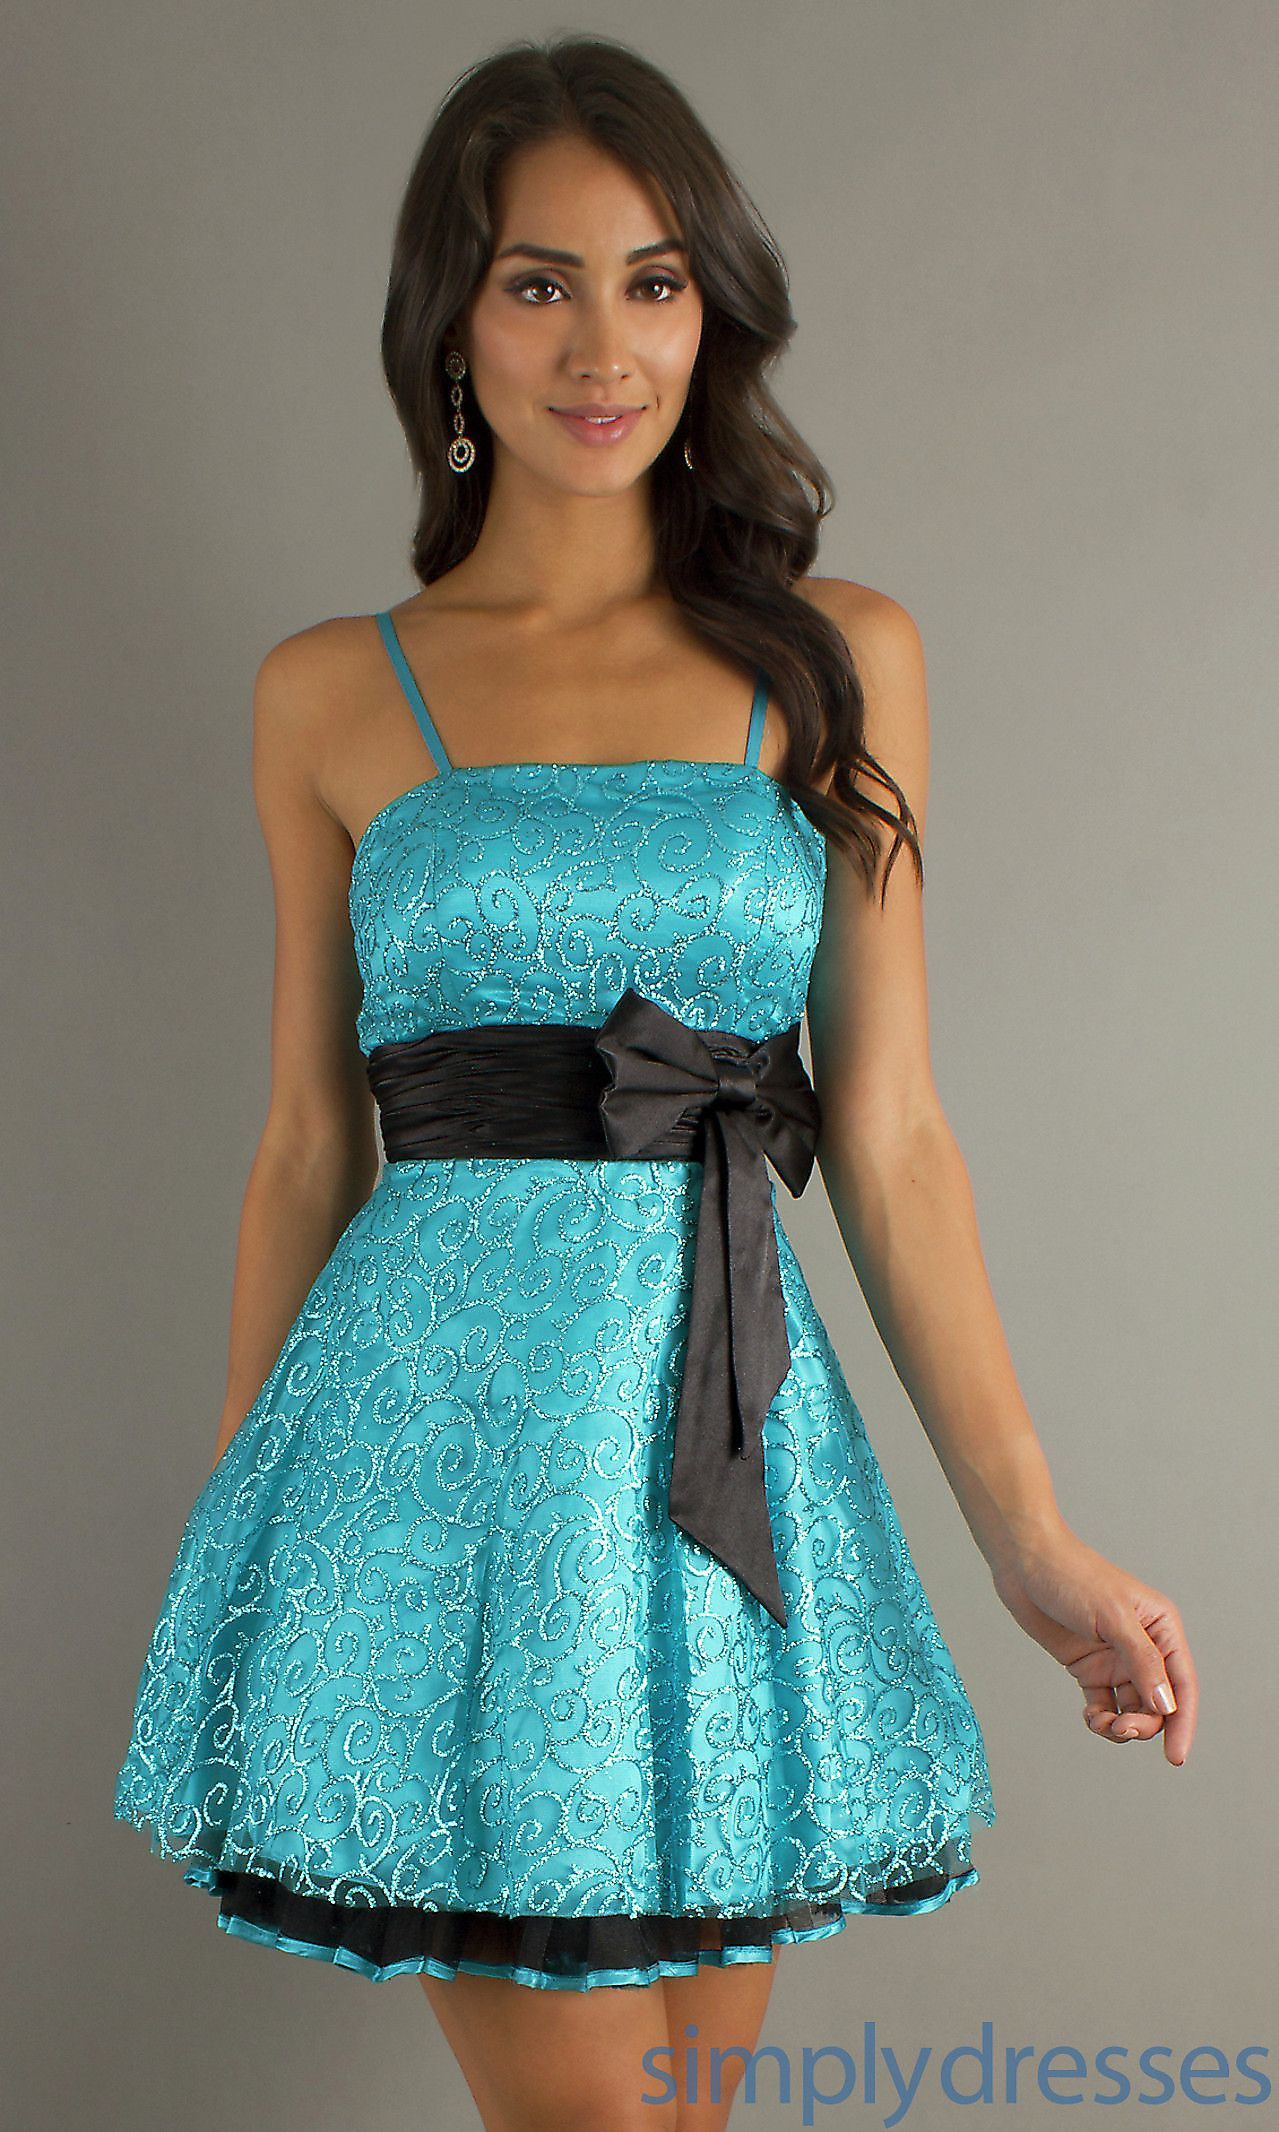 Spaghetti strap party dress short prom dresses simply dresses